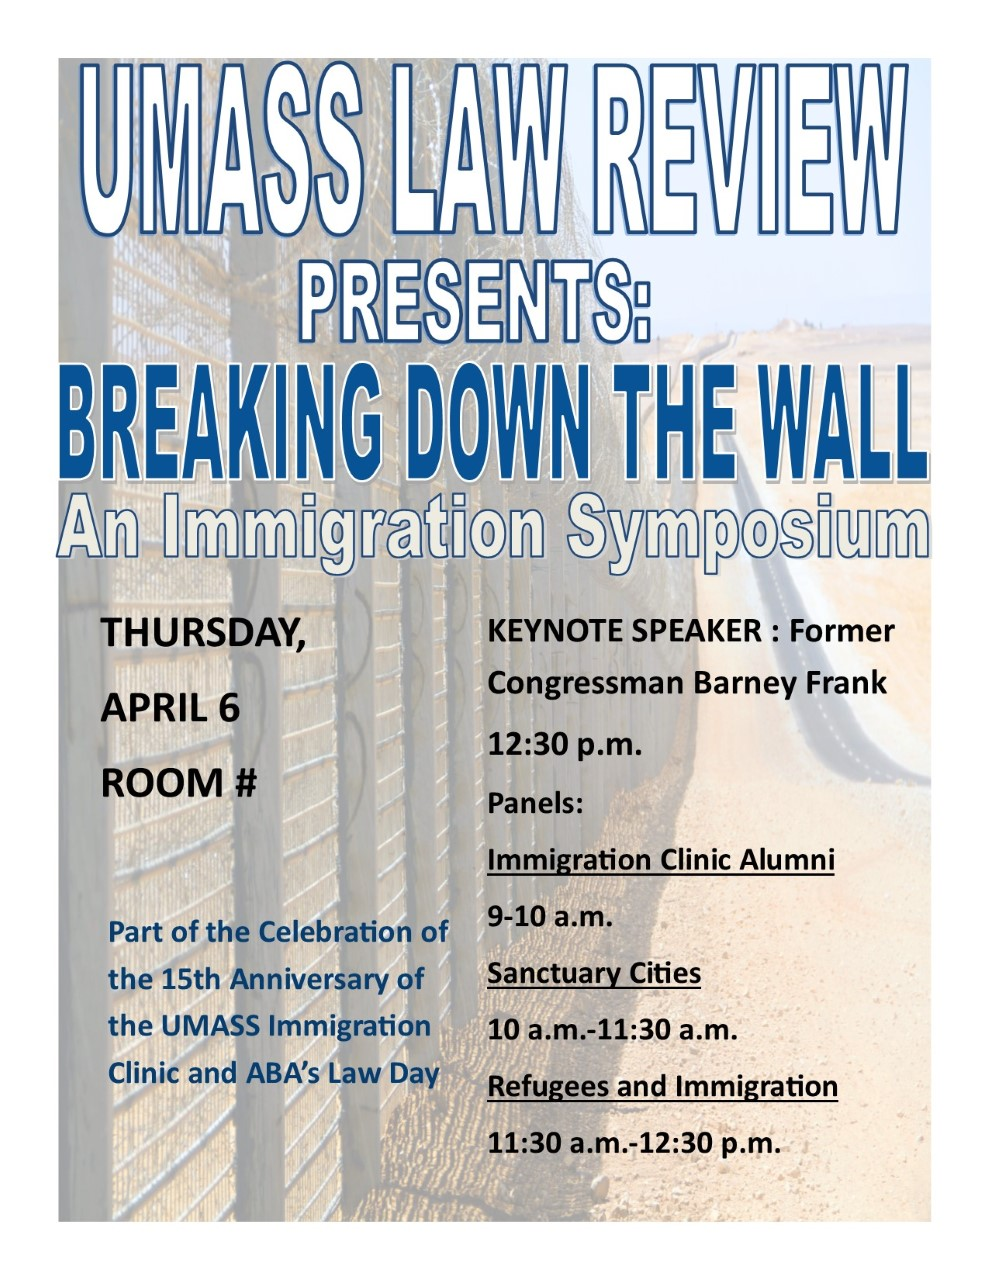 UMass Law Review Hosts an Immigration Law Symposium